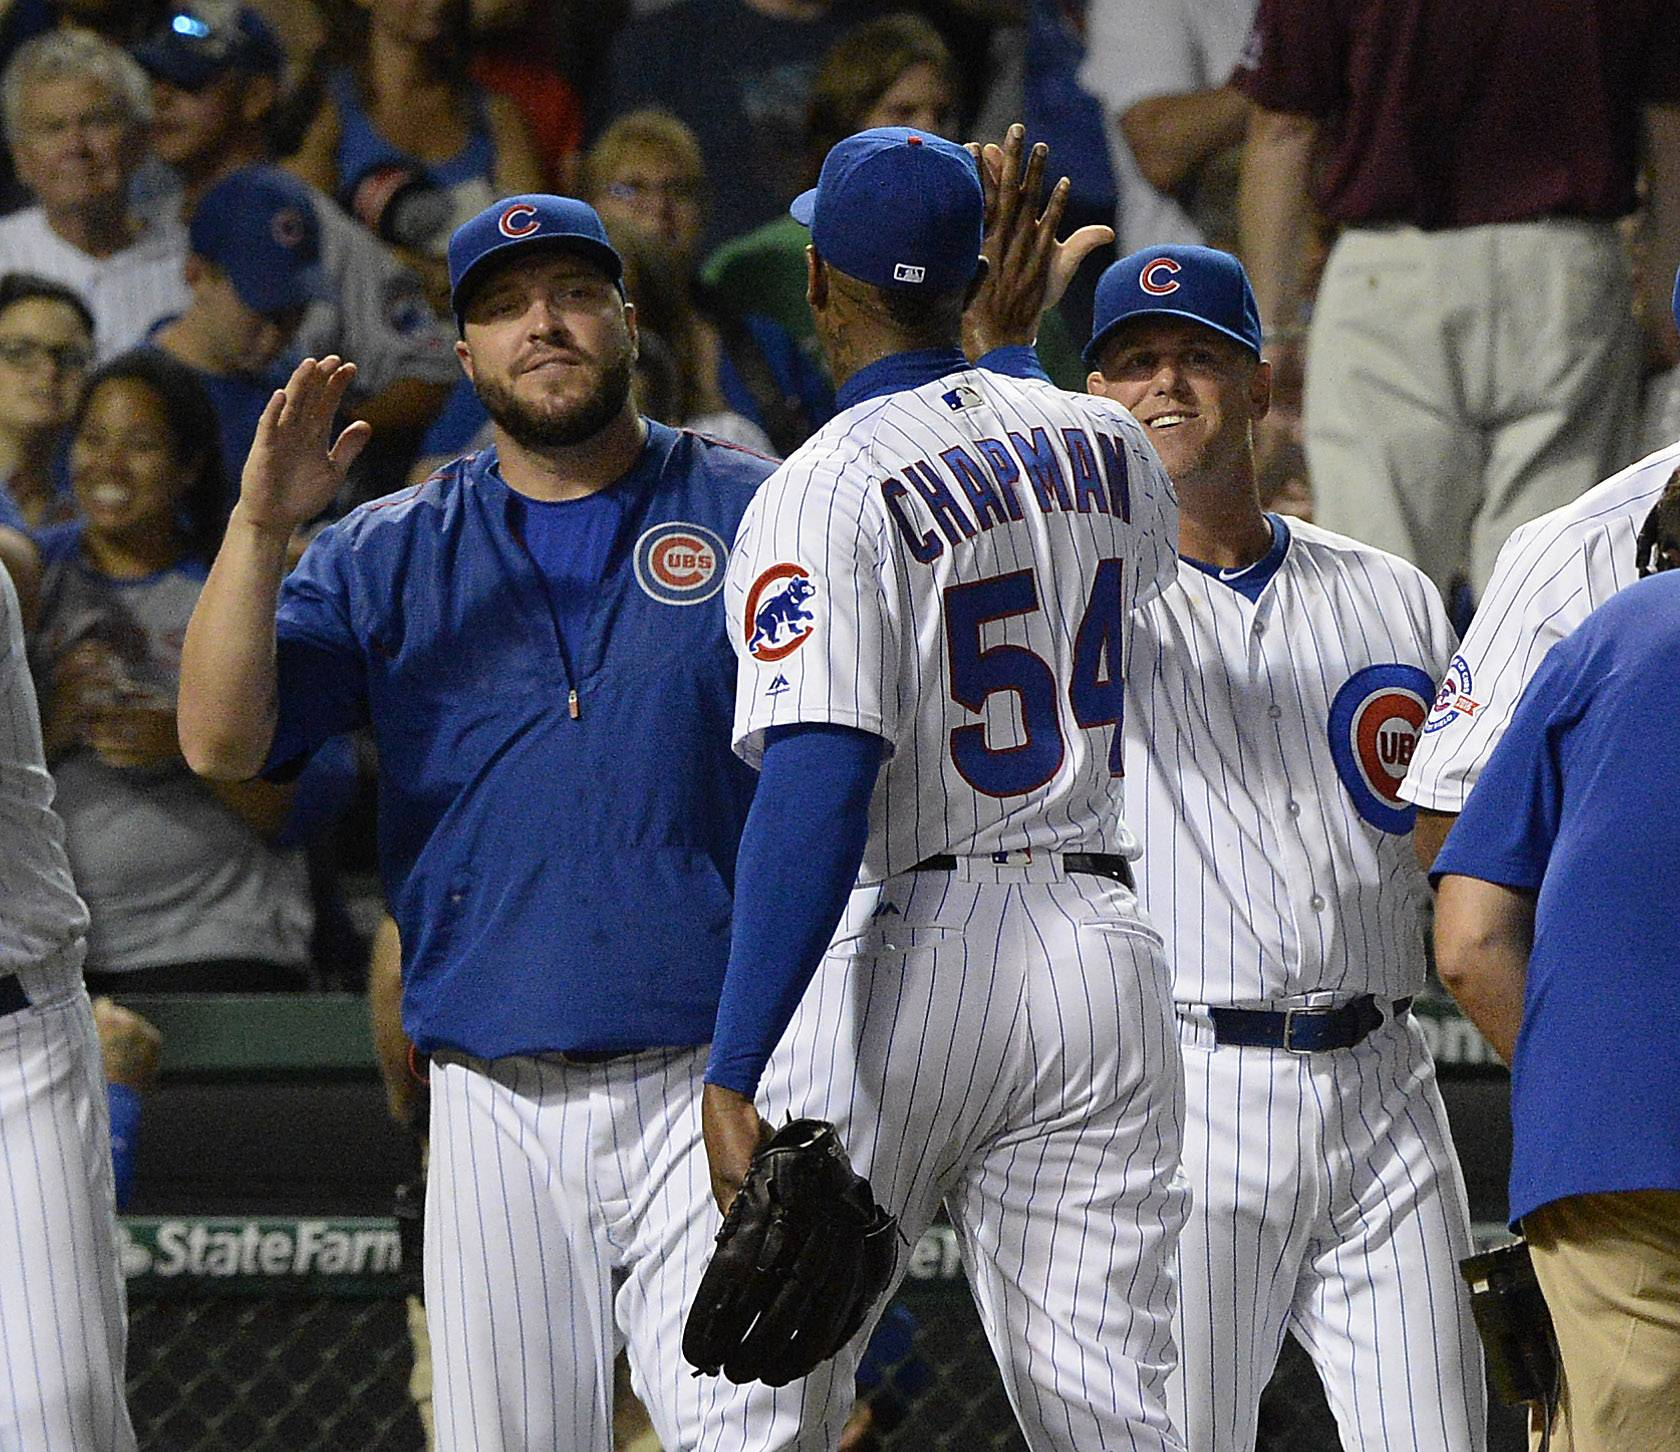 Chicago Cubs pitcher Aroldis Chapman delivers the high-fives after the Cubs beat the Chicago White Sox at Wrigley Field.